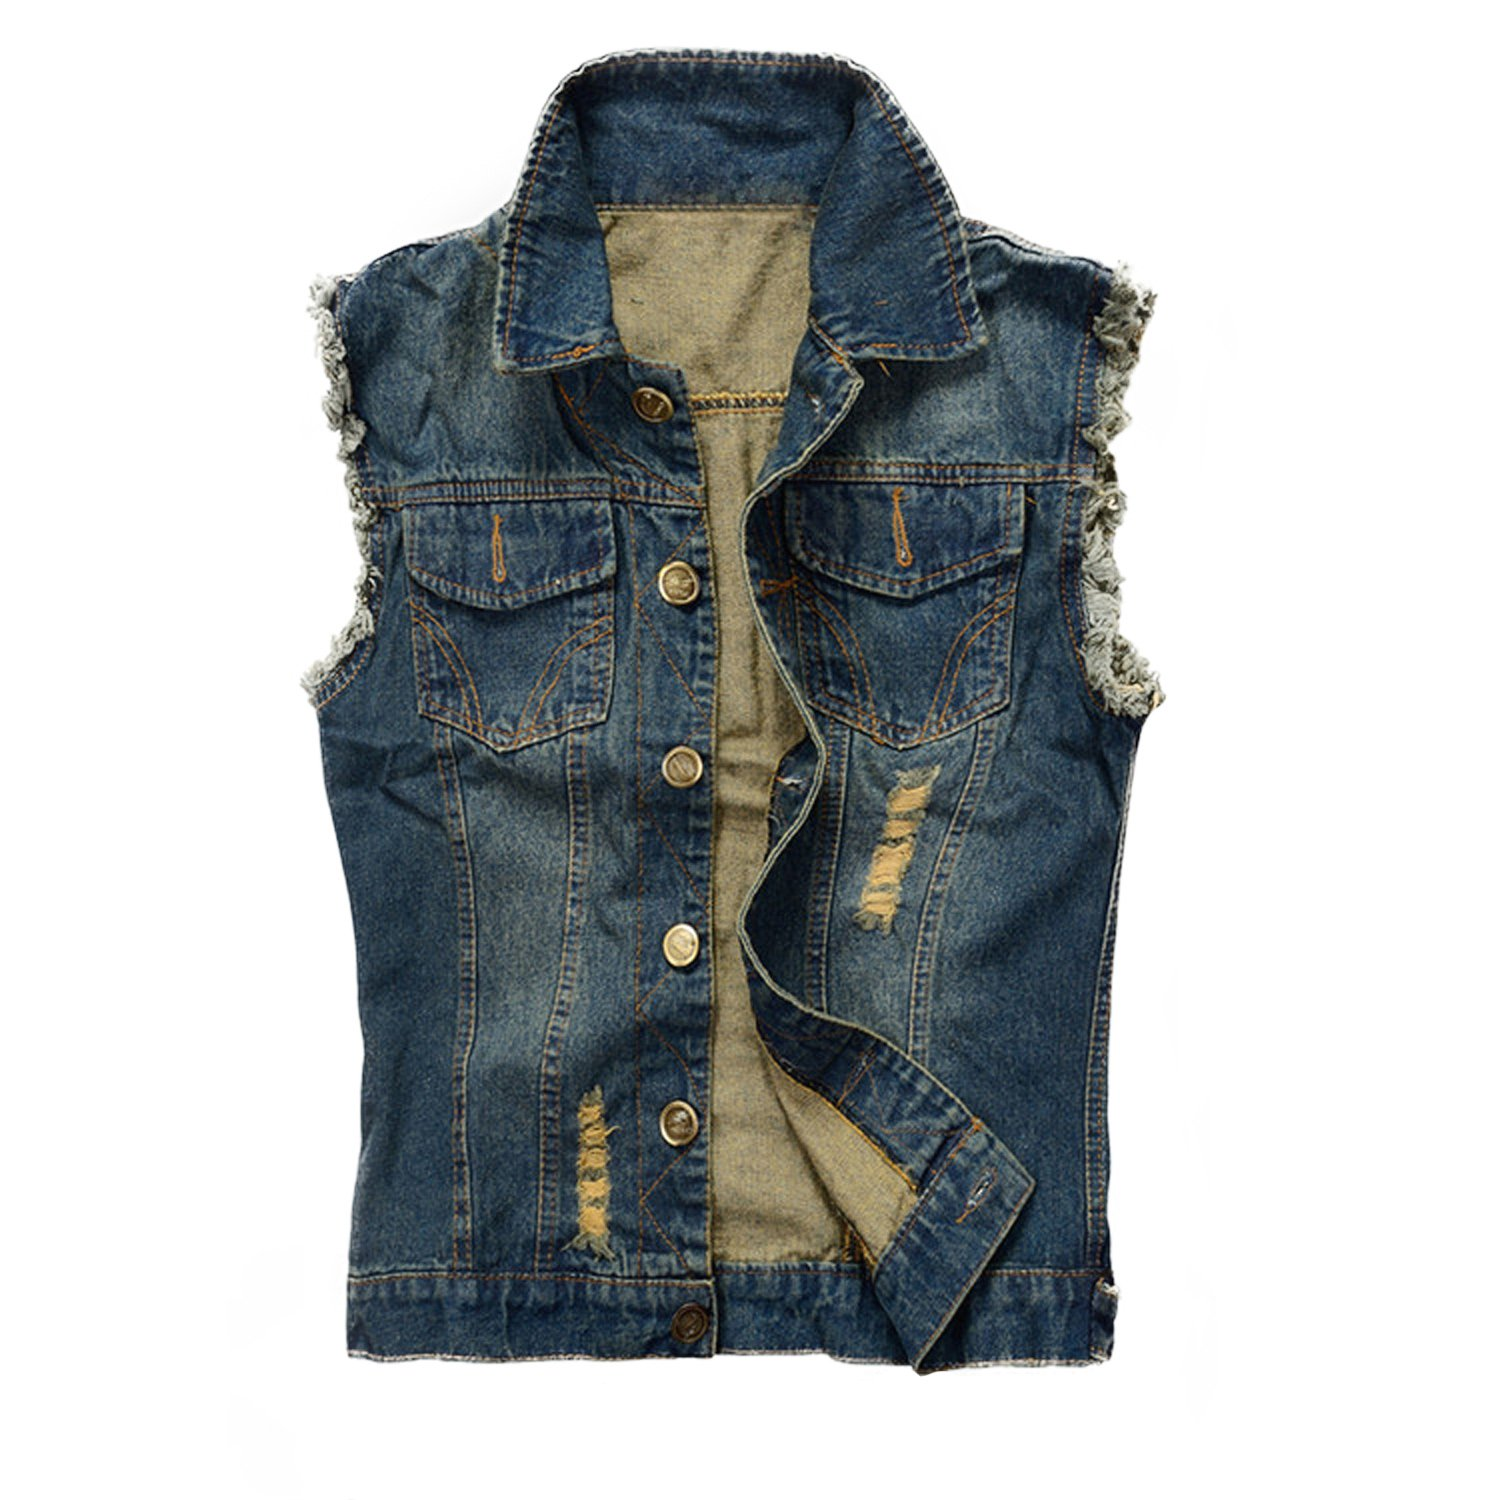 NASKY Men&Women's Fit Retro Ripped Denim Vest Sleeveless Lapel Jean Vest Jacket Waistcoat Top Plus Size XXX-Large